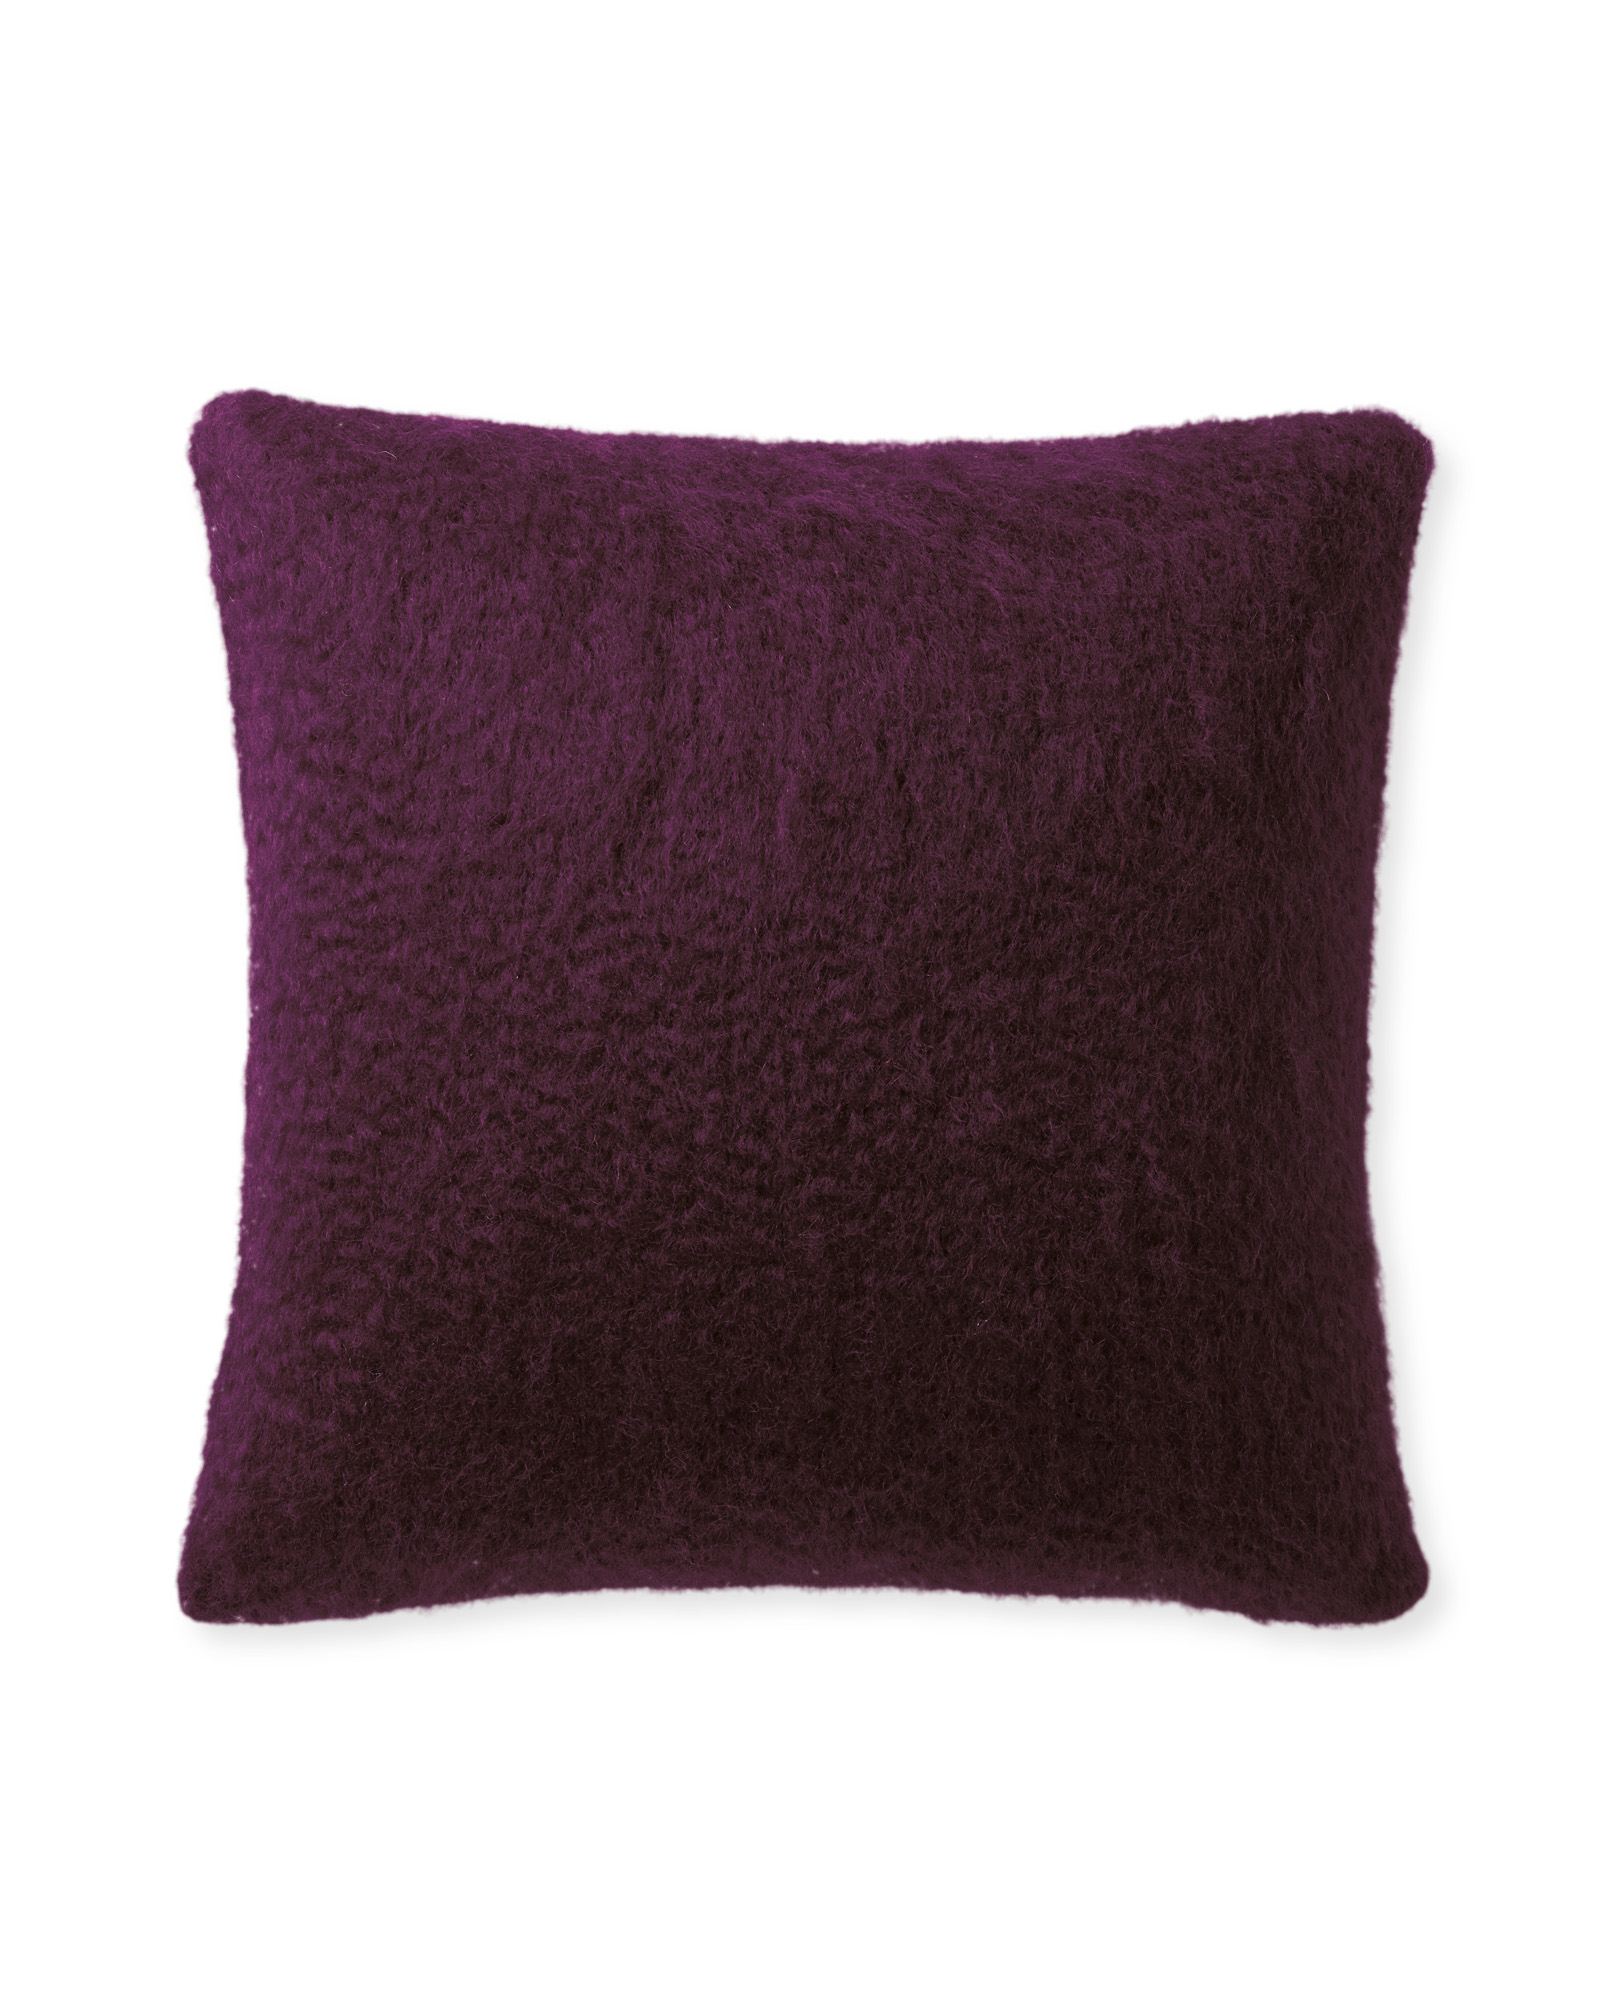 albion pillow cover